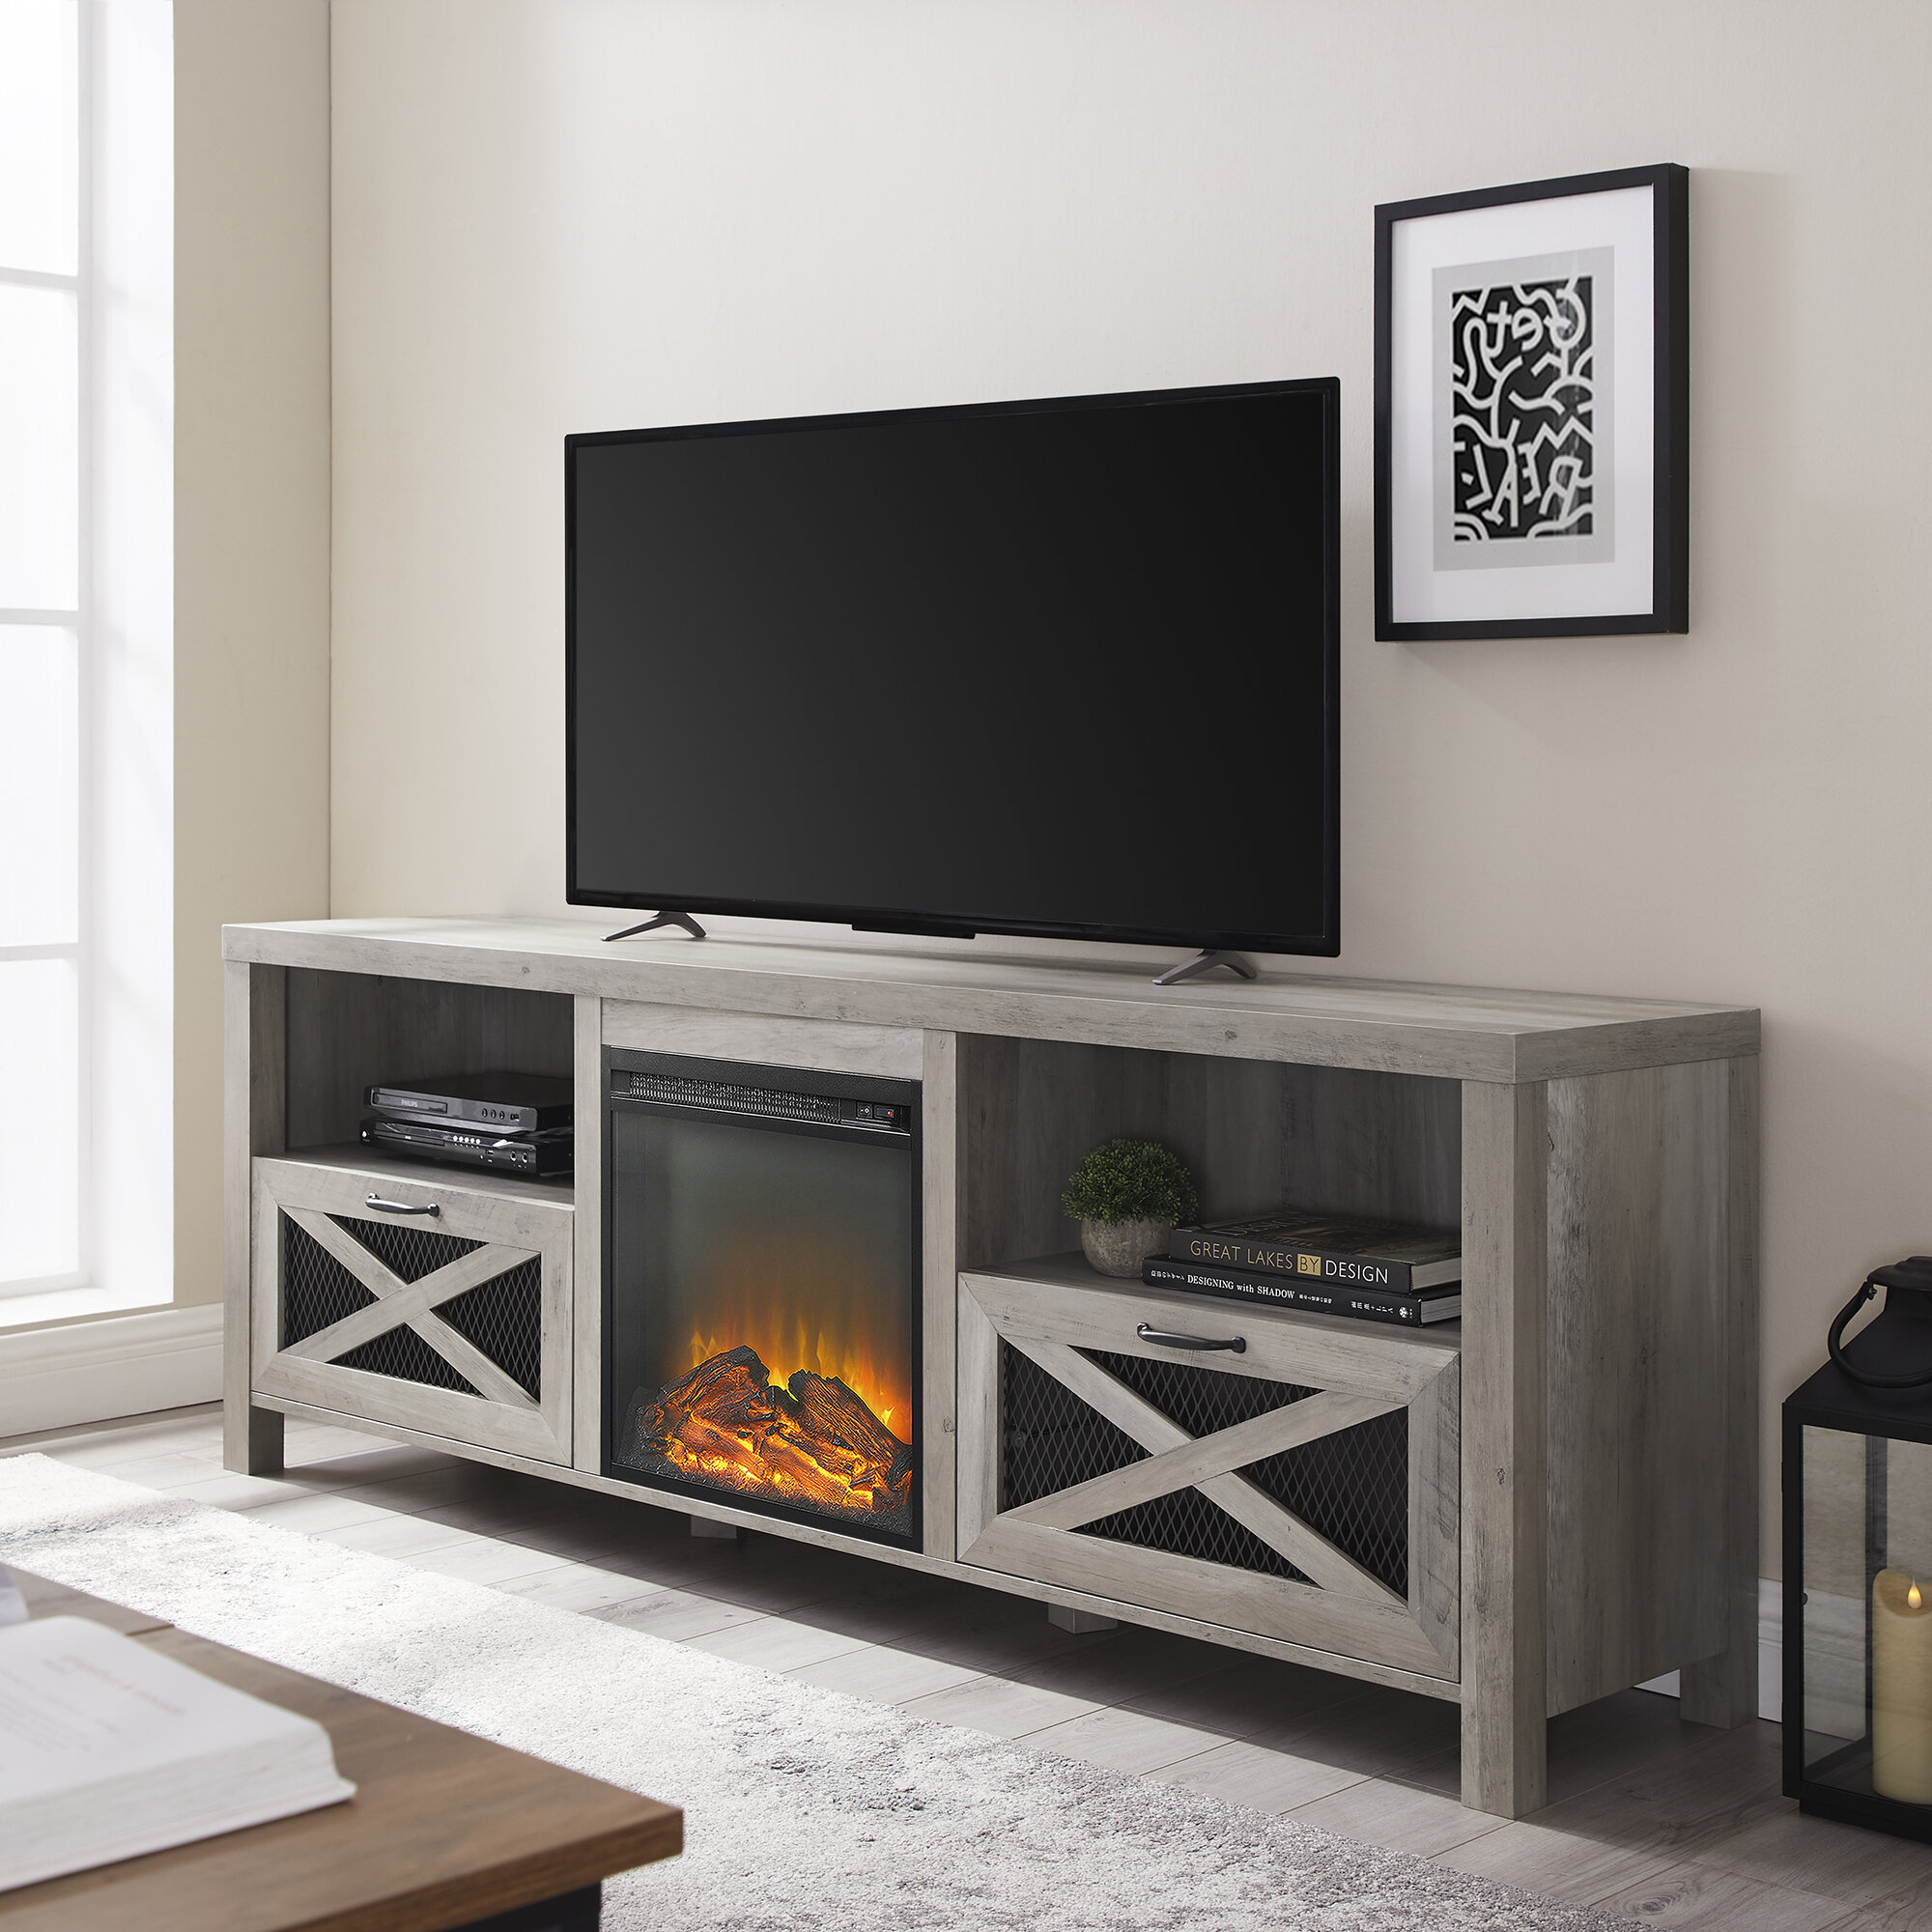 "Fireplace Tv Stand Barn Door New Tansey Tv Stand for Tvs Up to 70"" with Electric Fireplace"